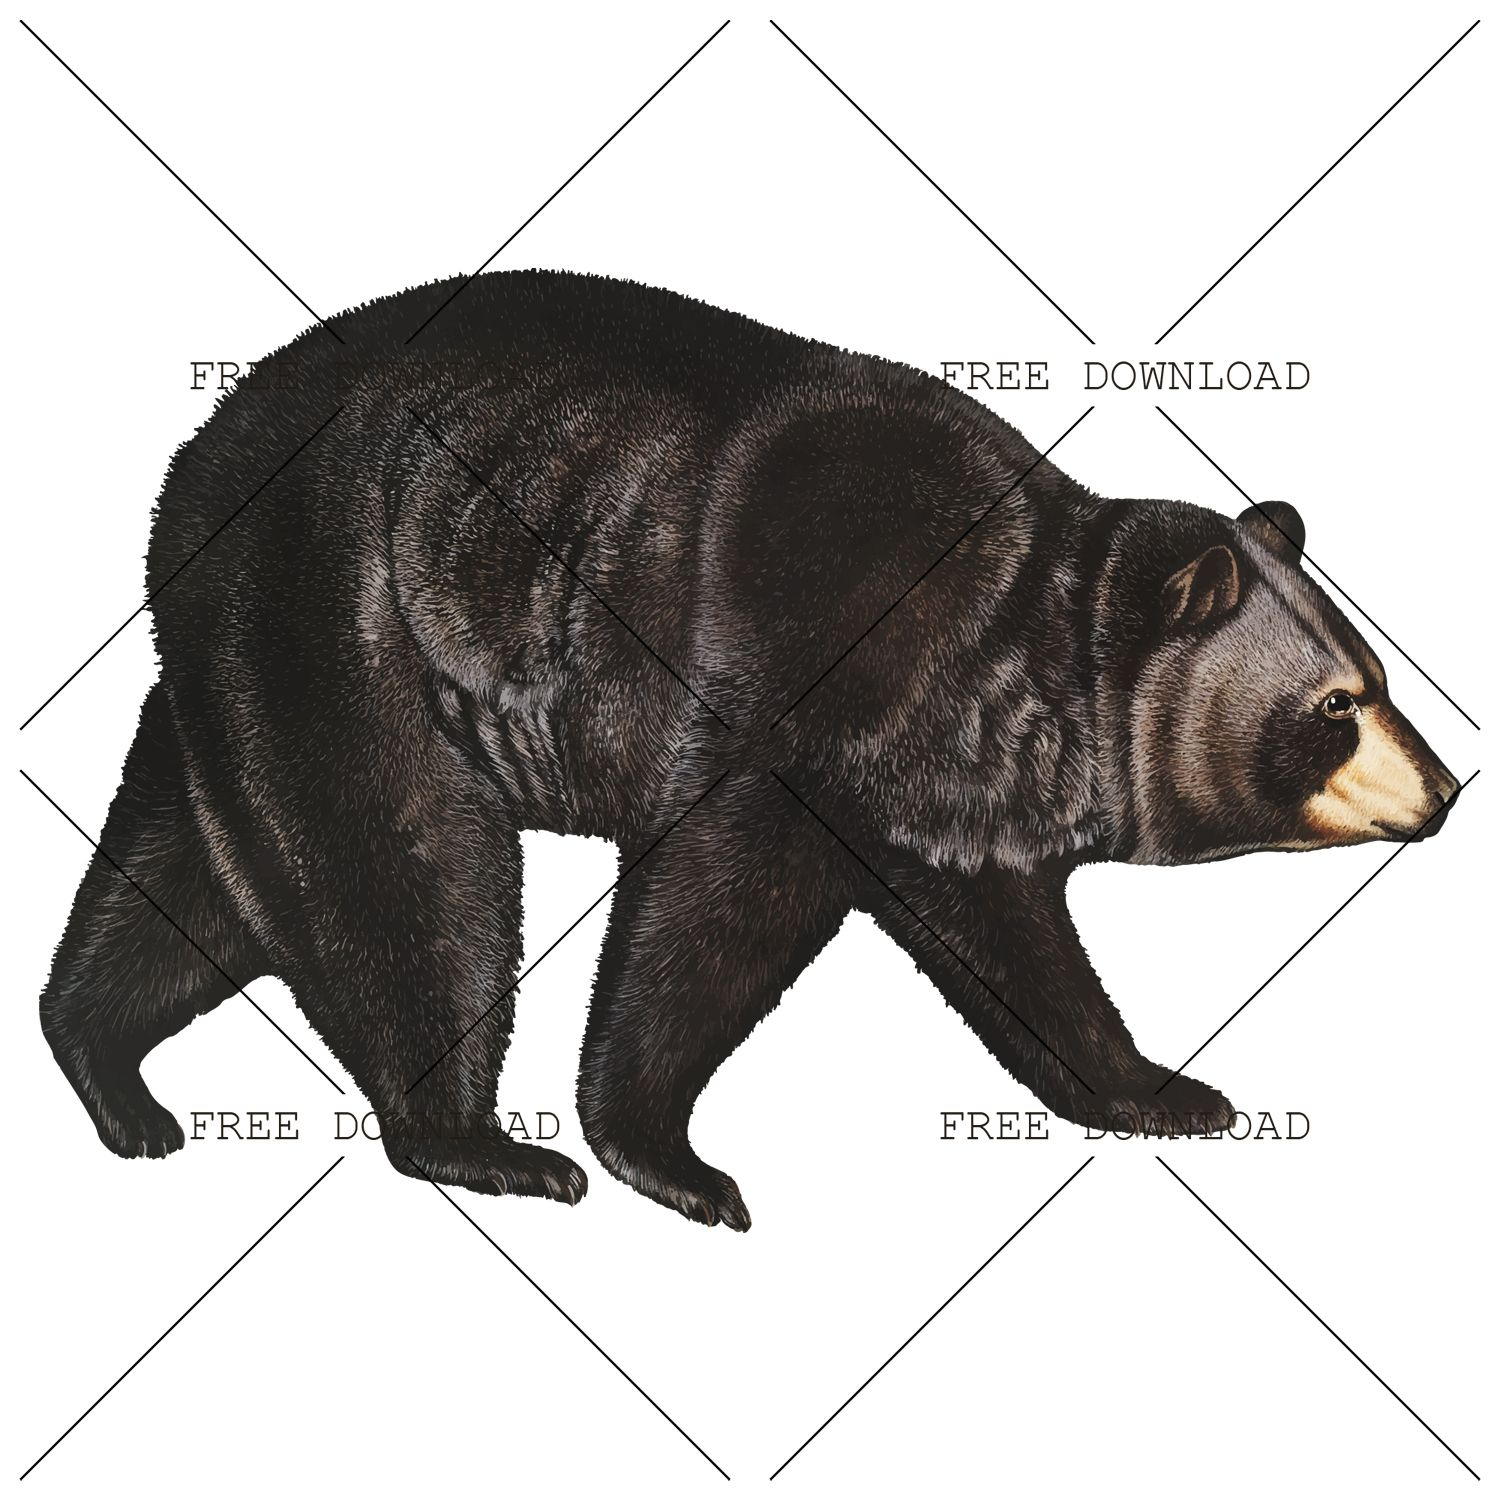 Bear Png Image With Transparent Background Png Images Transparent Background Stock Images Free